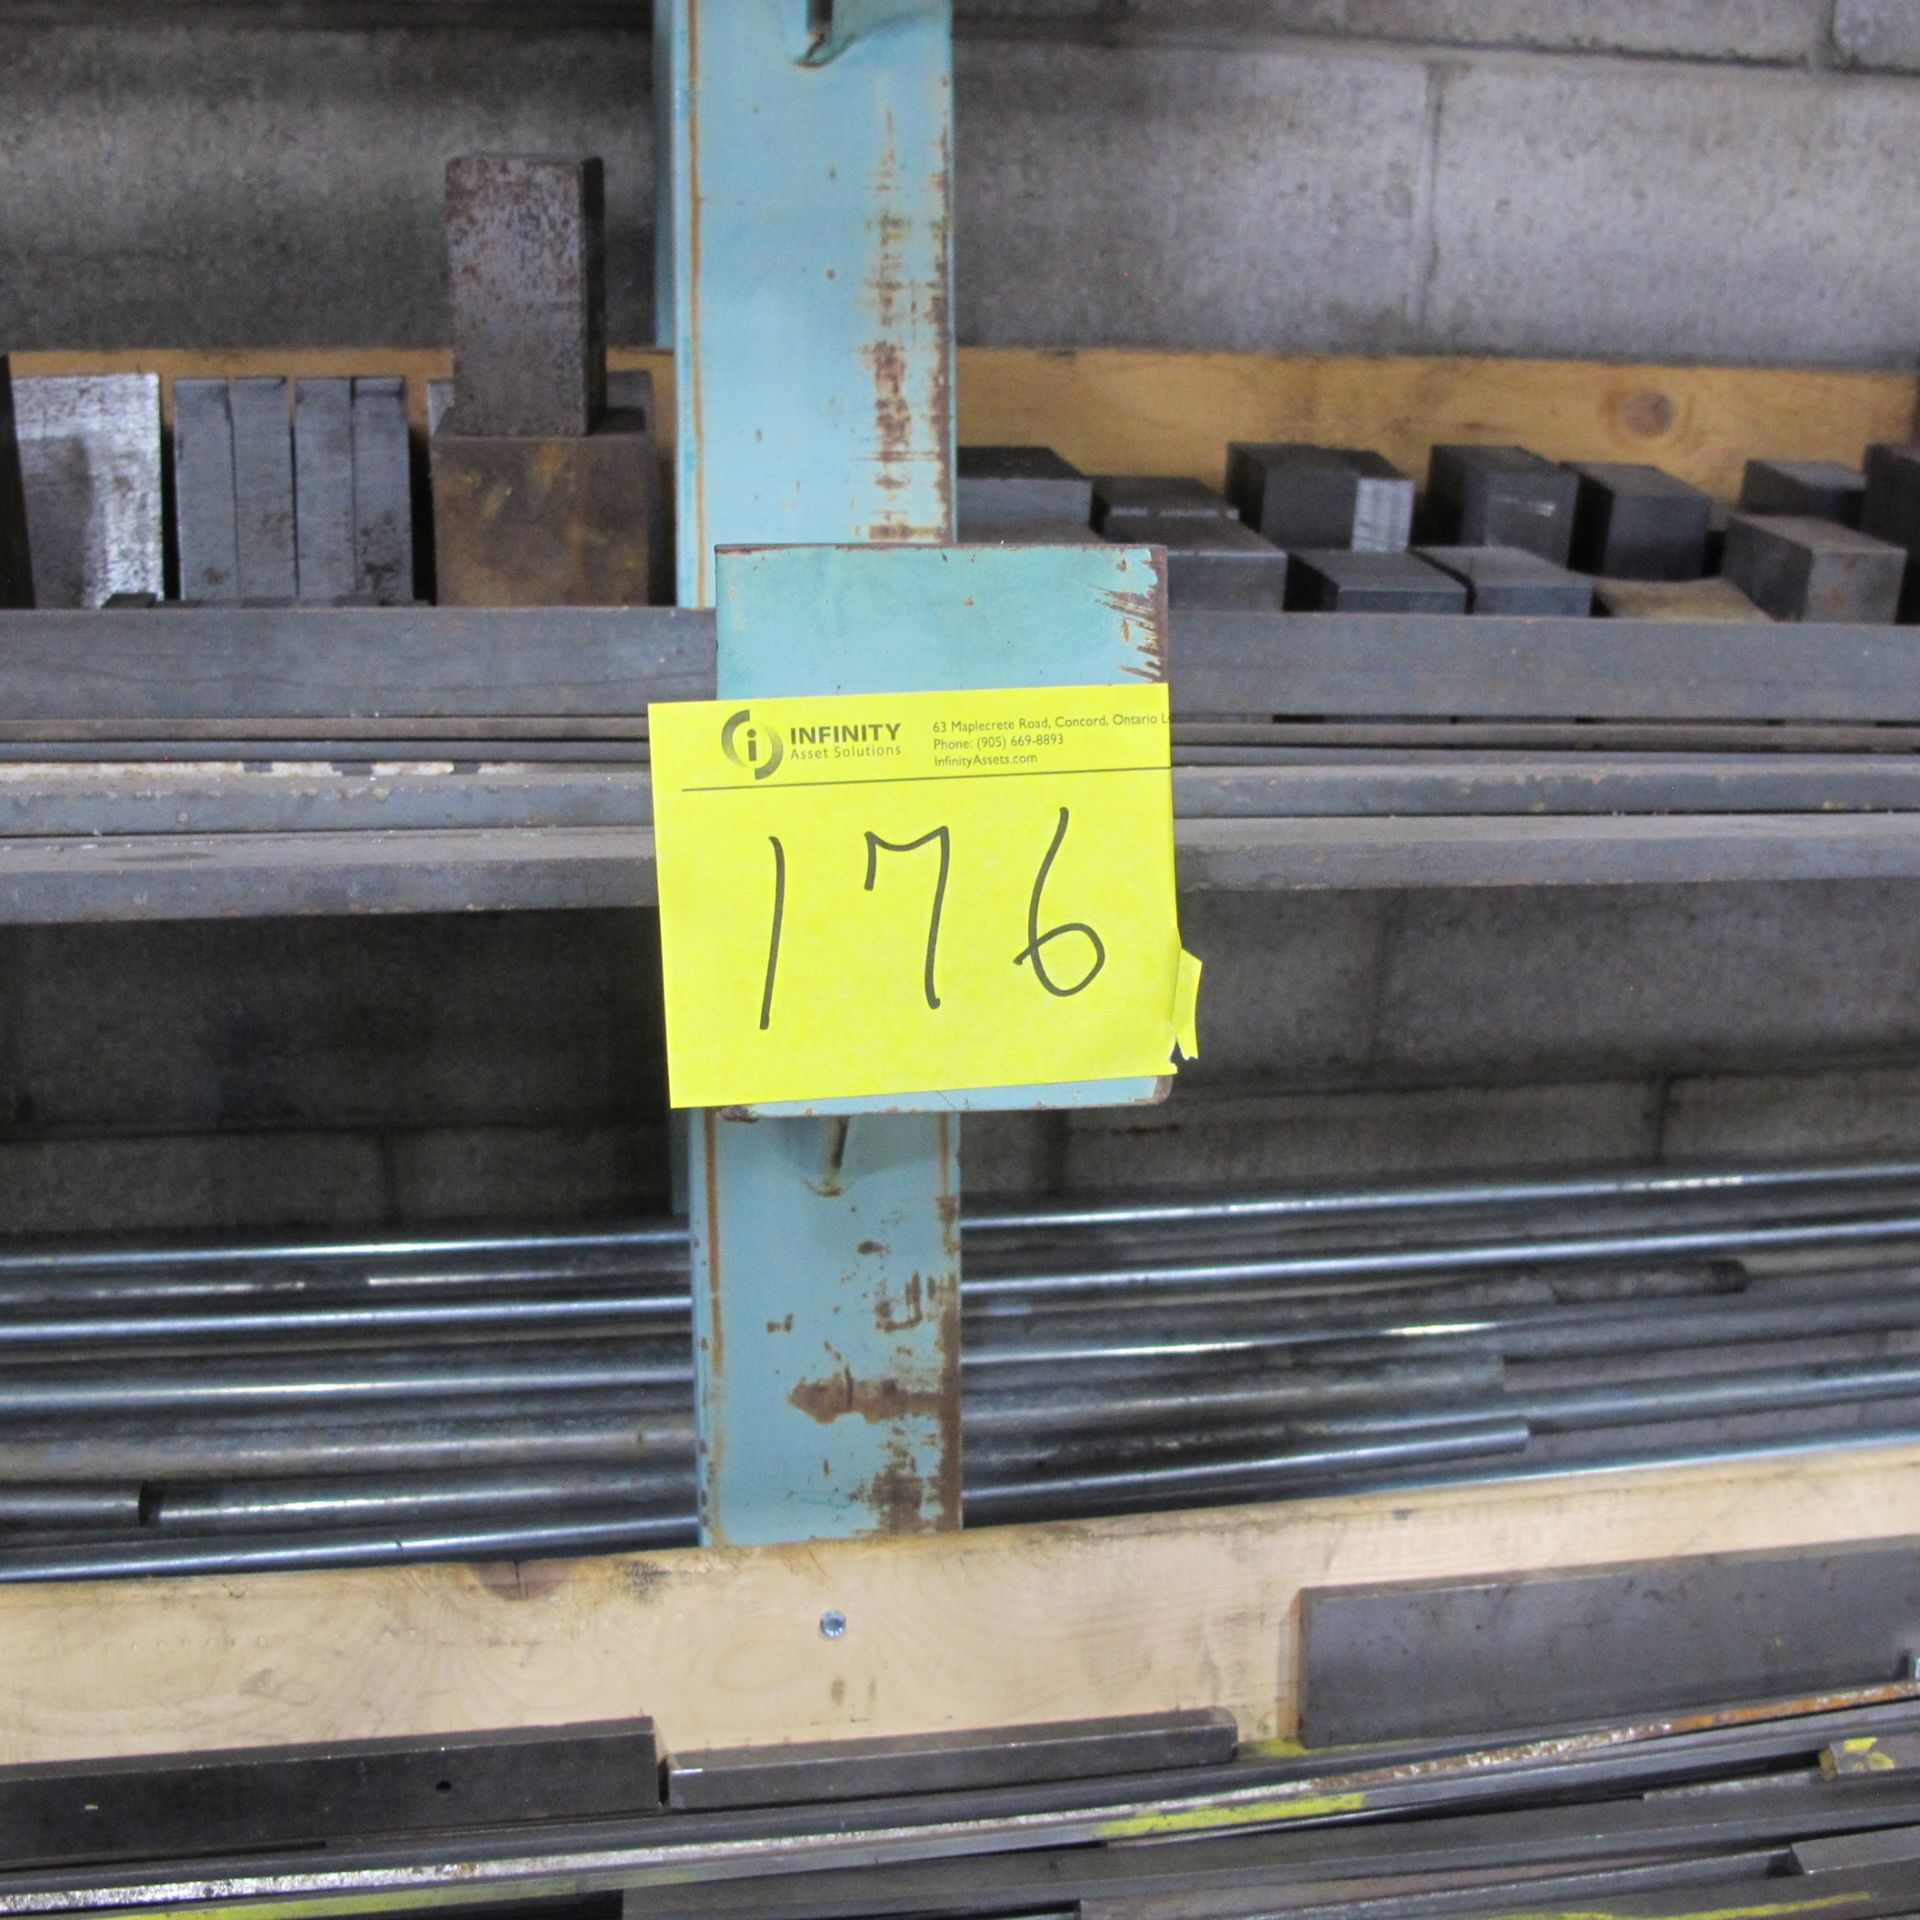 """Lot 176 - CANTELIVER STEEL RACK 6 LEVELS W/BAR AND CHANNEL STOCK (STEEL, STAINLESS STEEL, ALUMINUM) 36""""D X 8'T"""